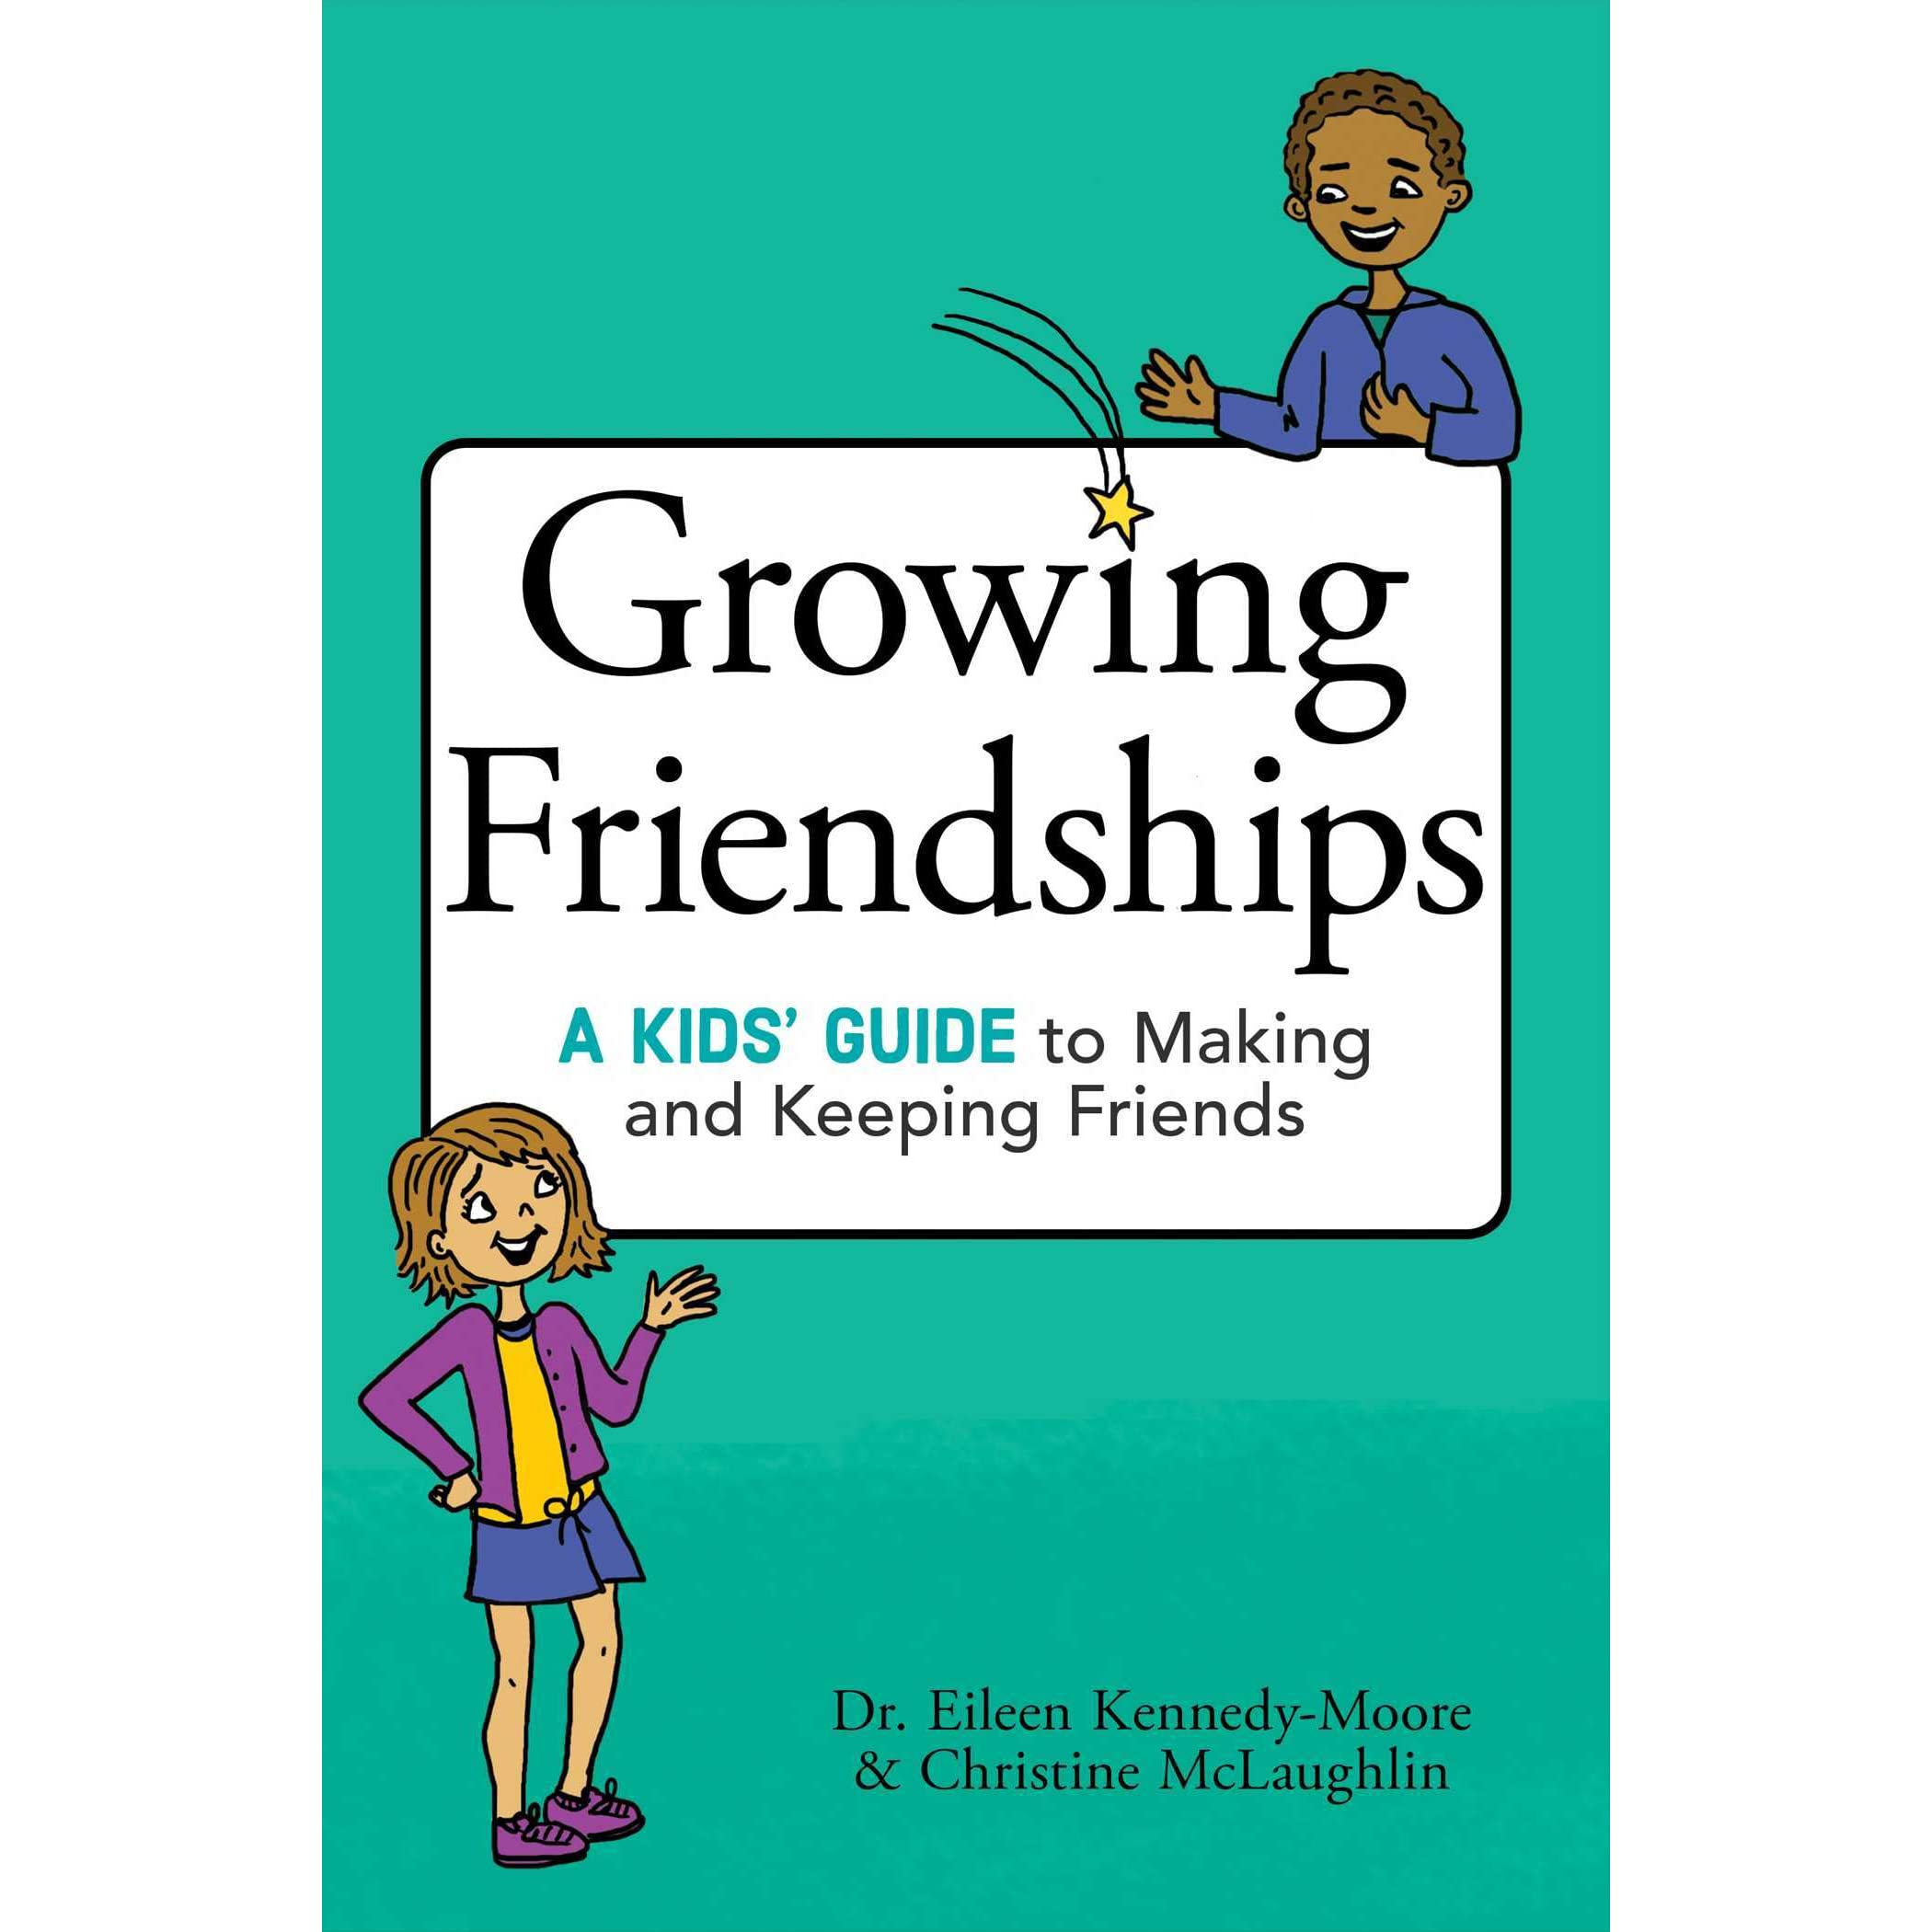 Growing Friendships: A Kids' Guide to Making and Keeping